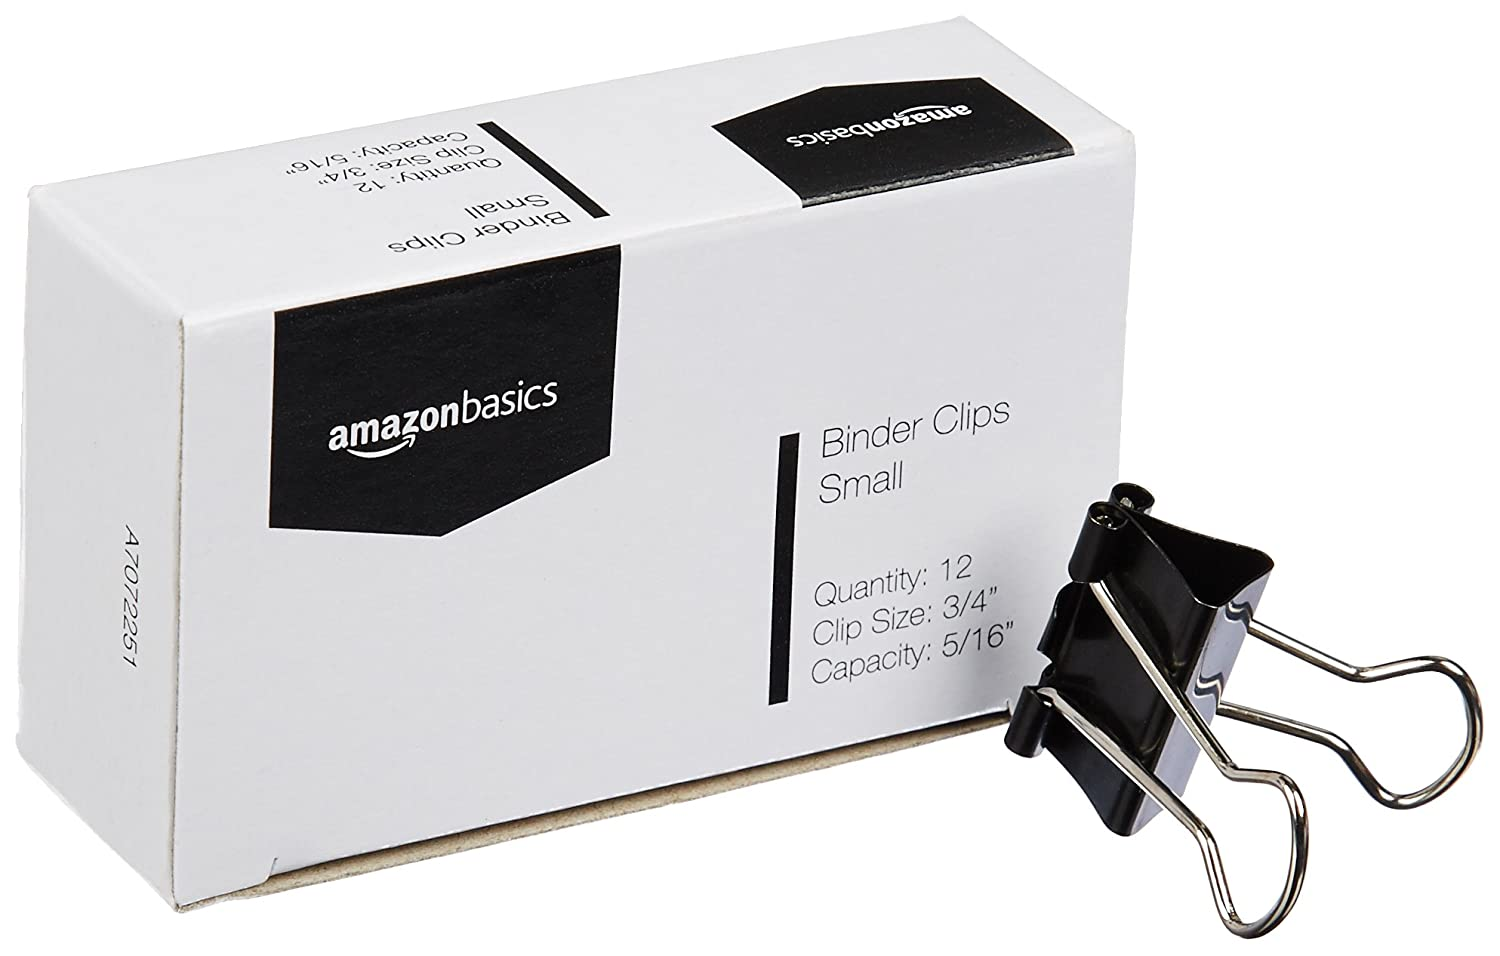 AmazonBasics Binder Paper Clip  Small 12 Clips per Pack 12Pack